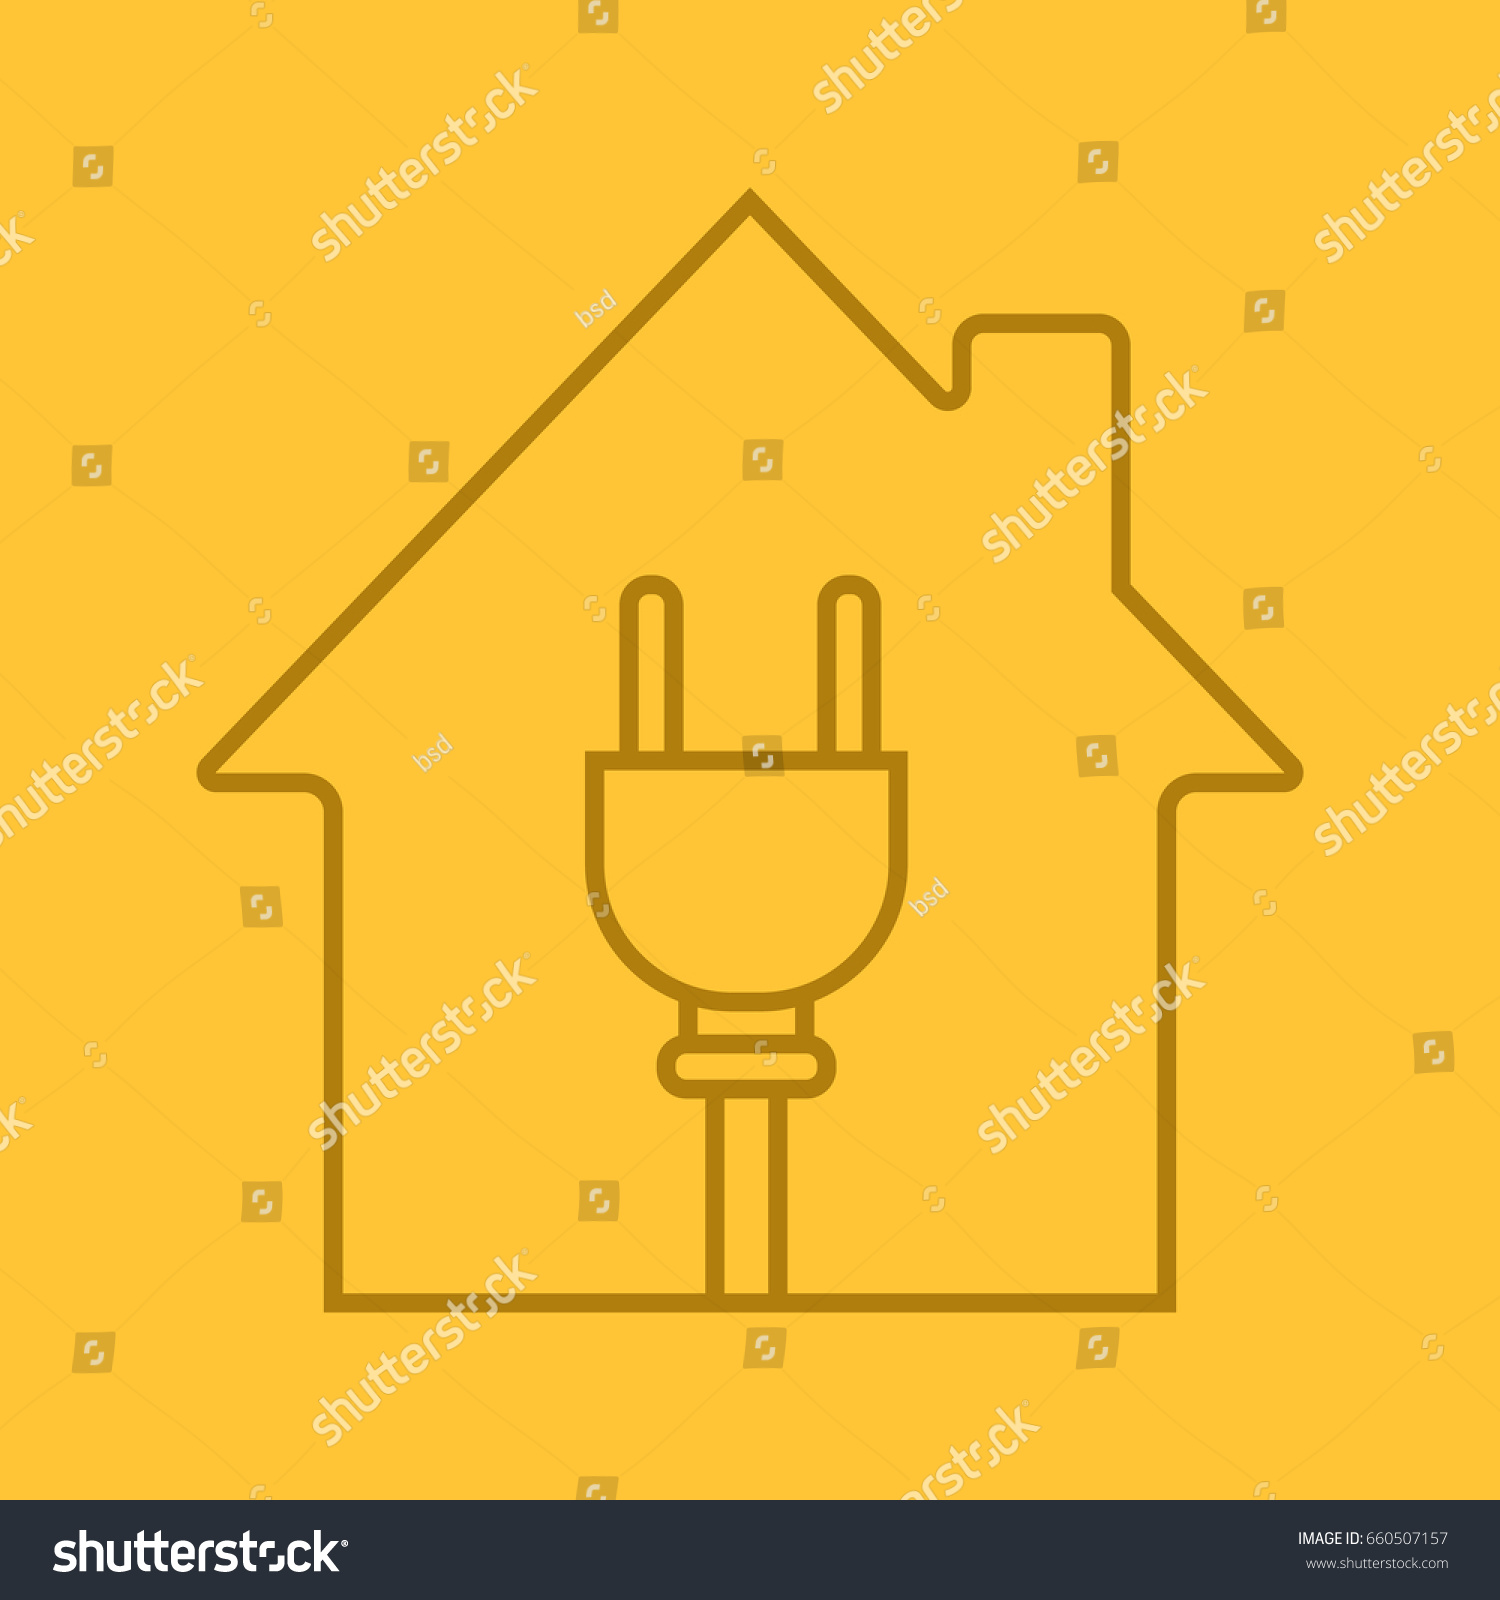 House Wire Plug Inside Linear Icon Stock Vector Royalty Free Wiring Symbols With Electric Utilities Home Electrification Thin Line